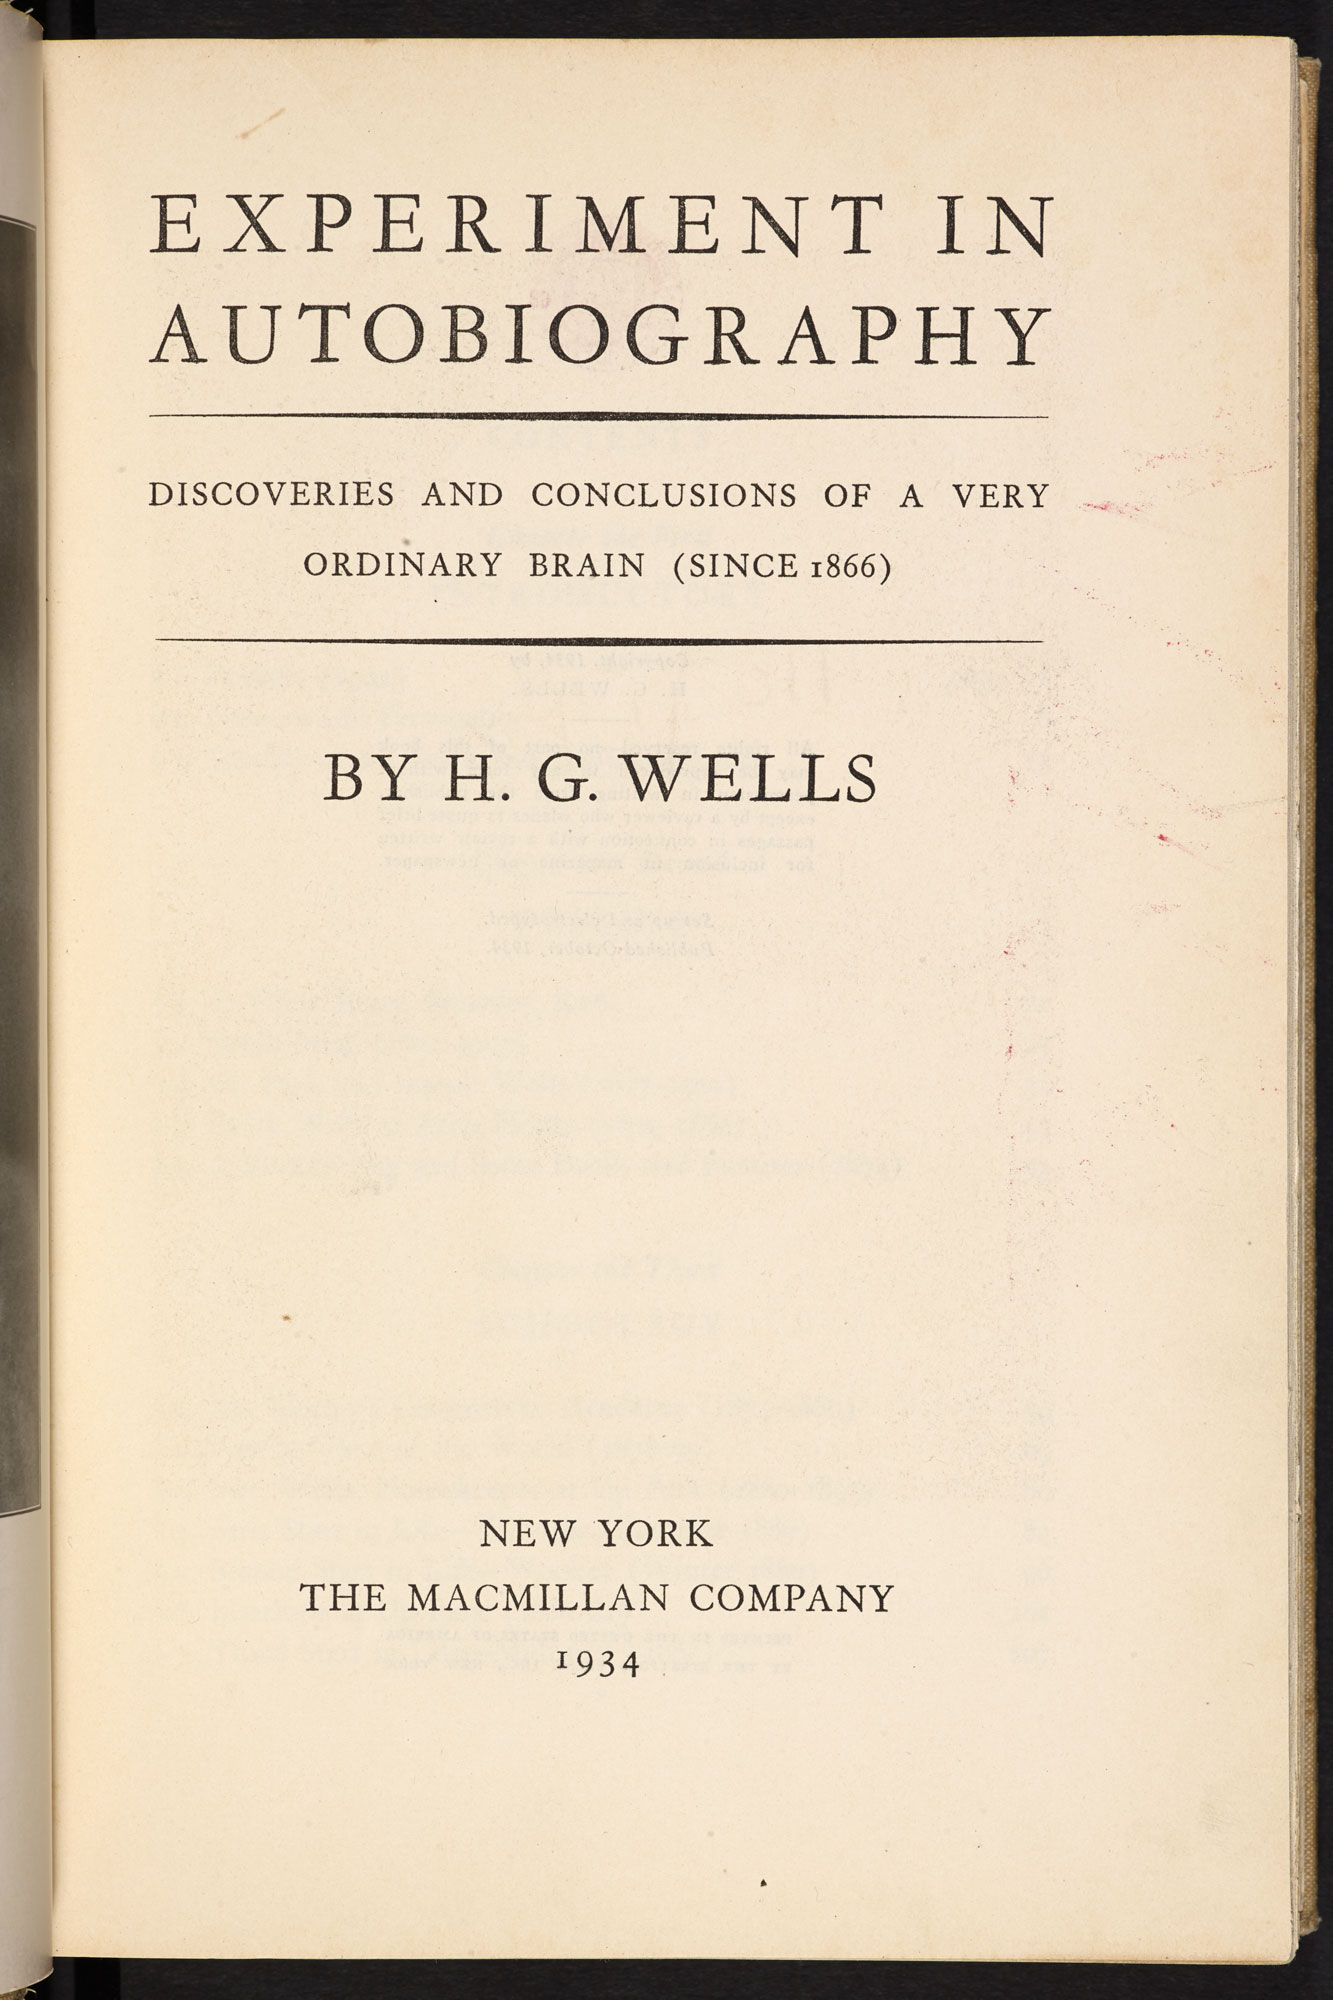 H G Wells, An Experiment in Autobiography [page: title page]